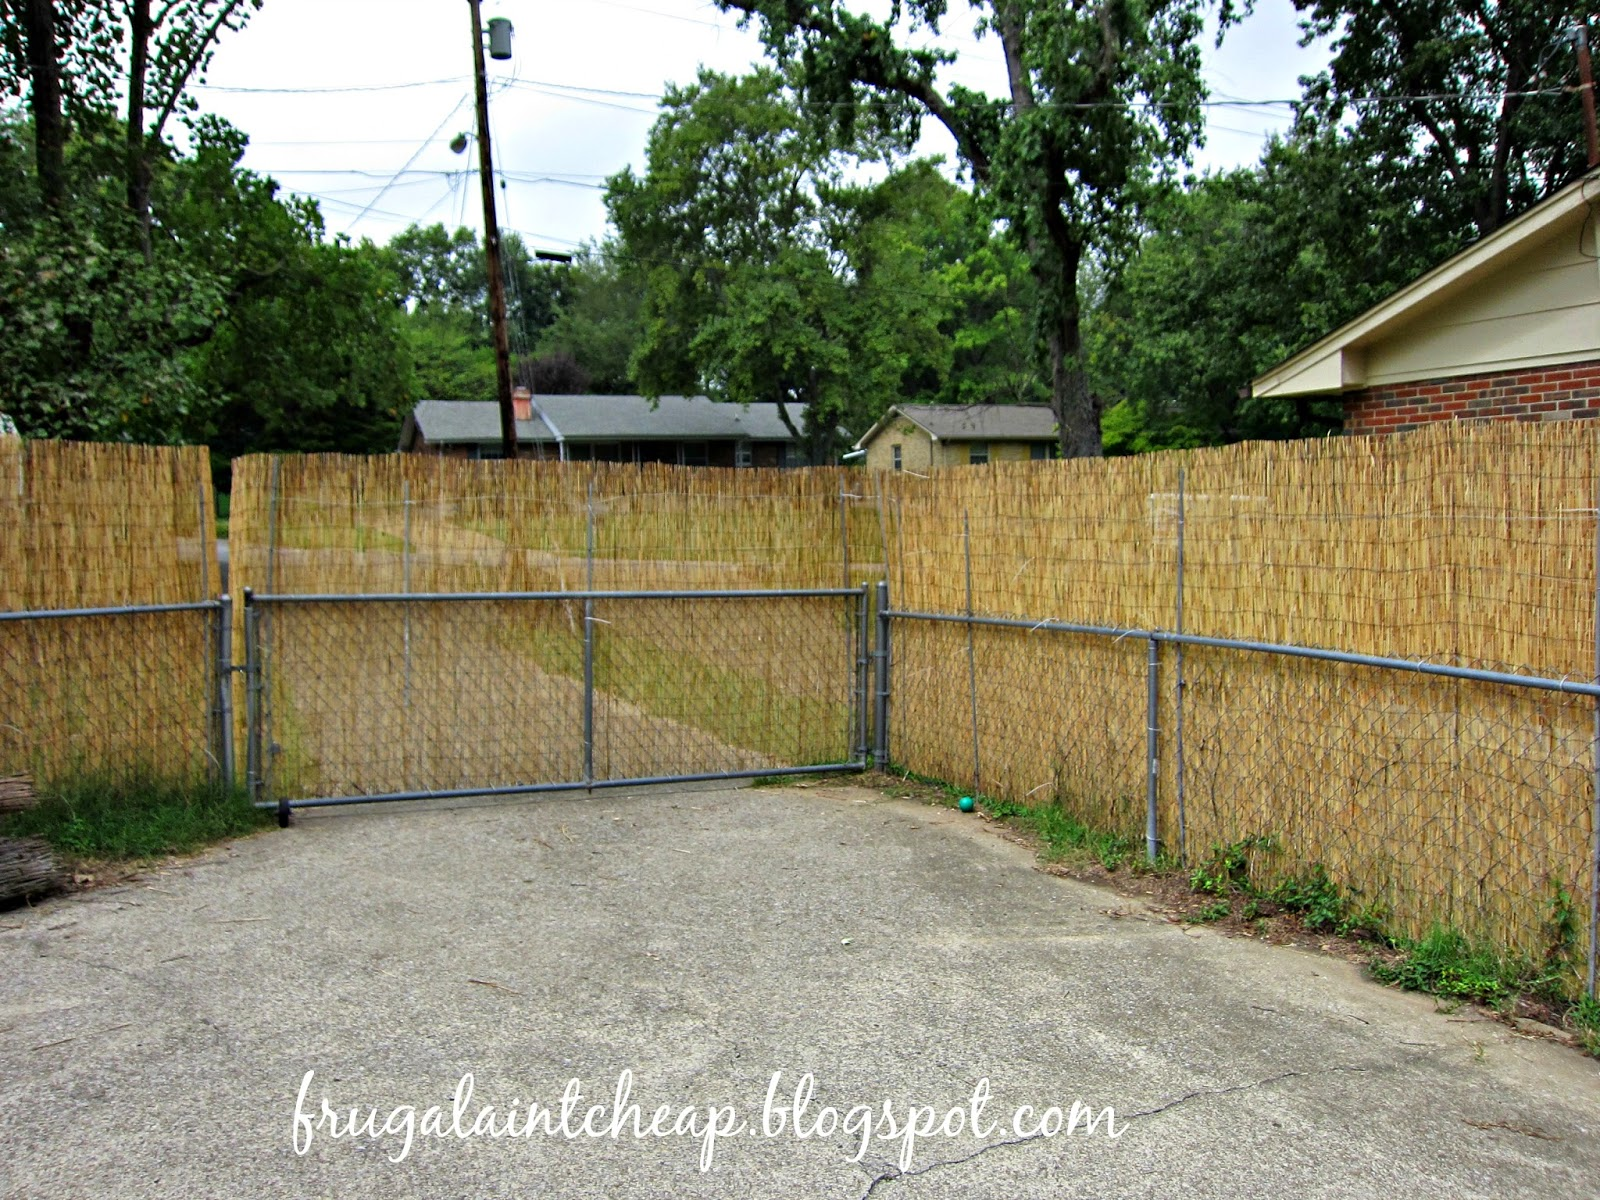 Frugal Ain t Cheap Chain Link Fence Project